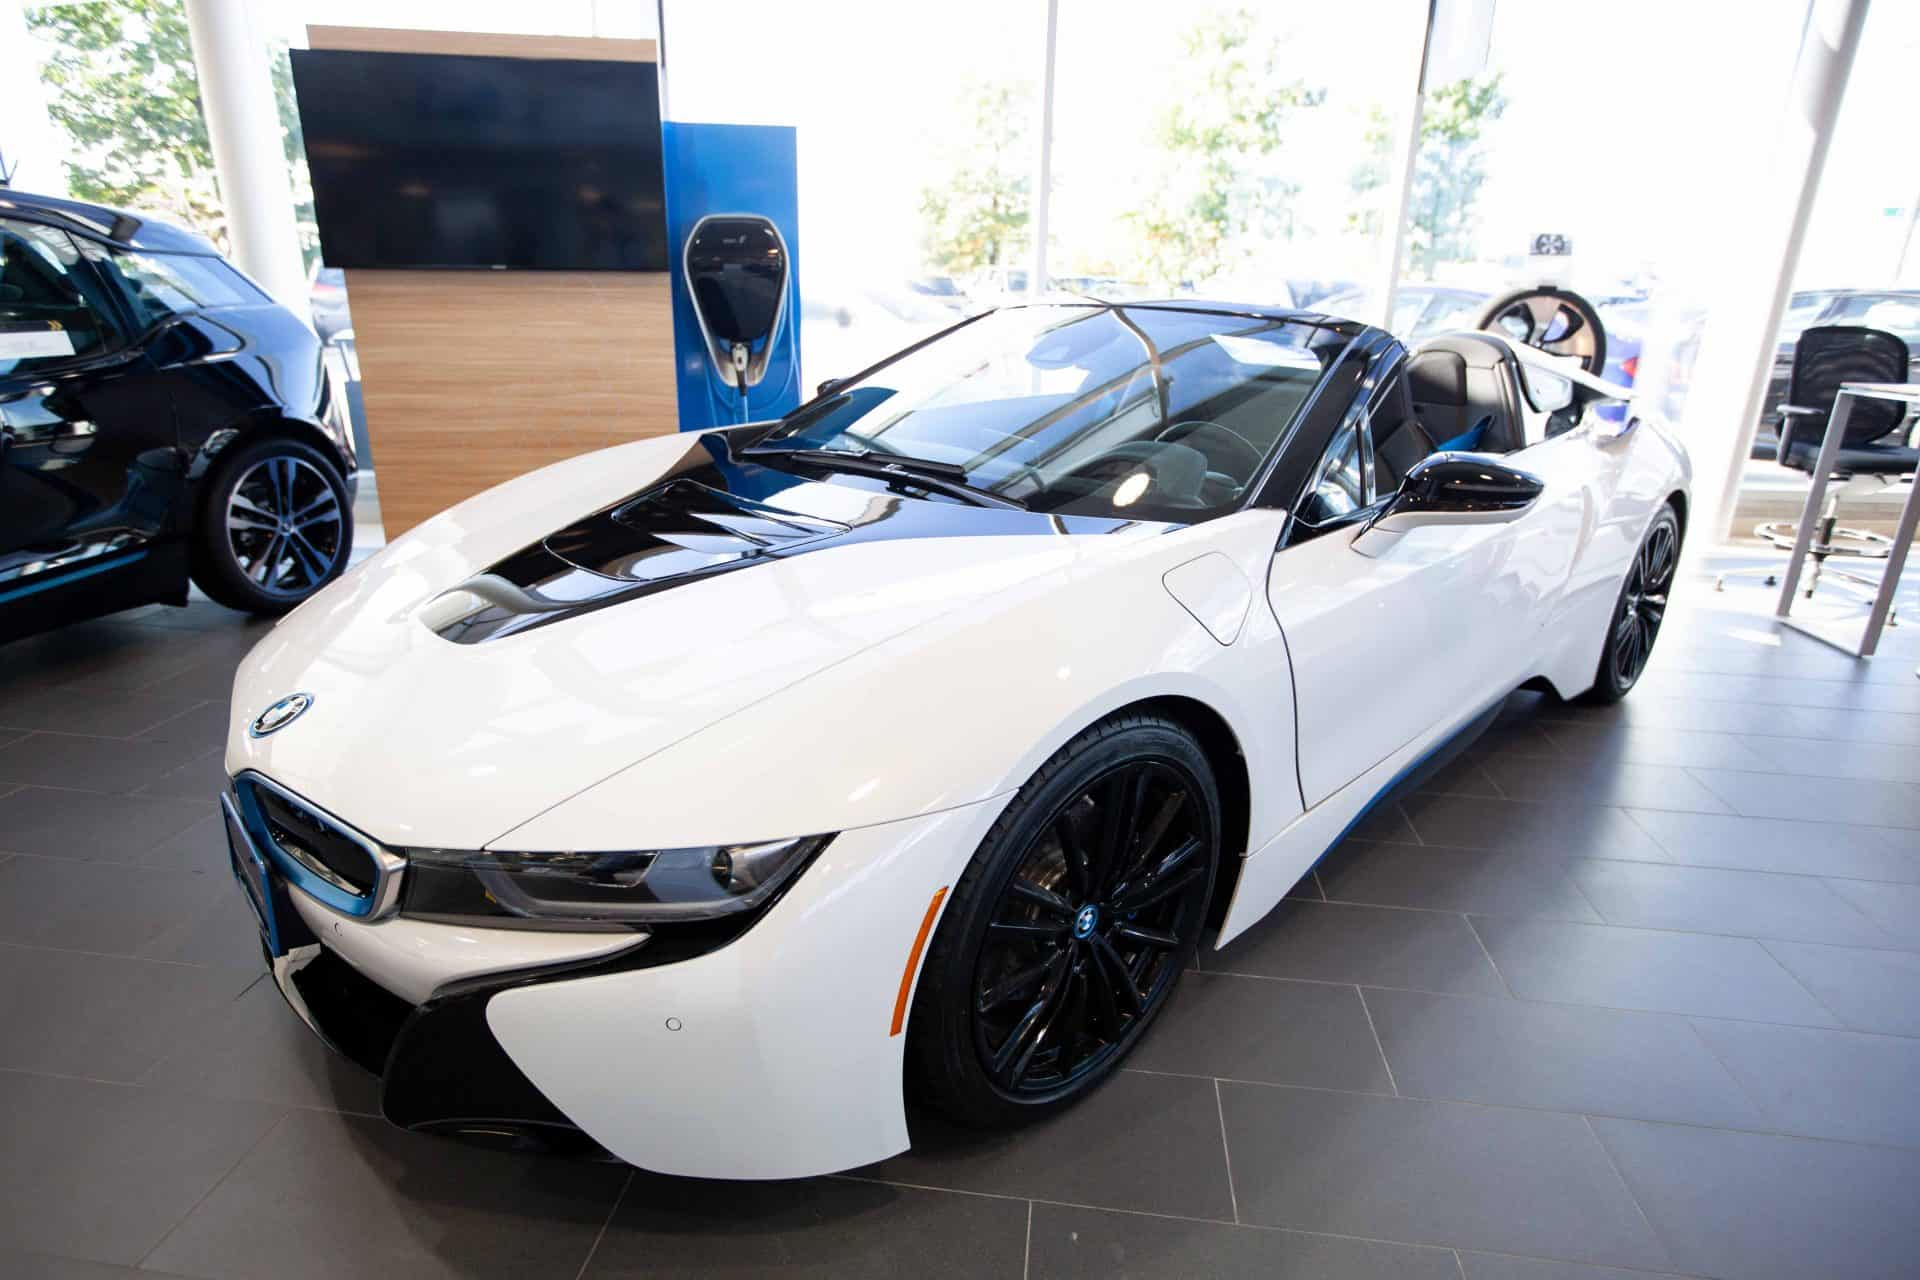 bmw-white-car-richteamedia360